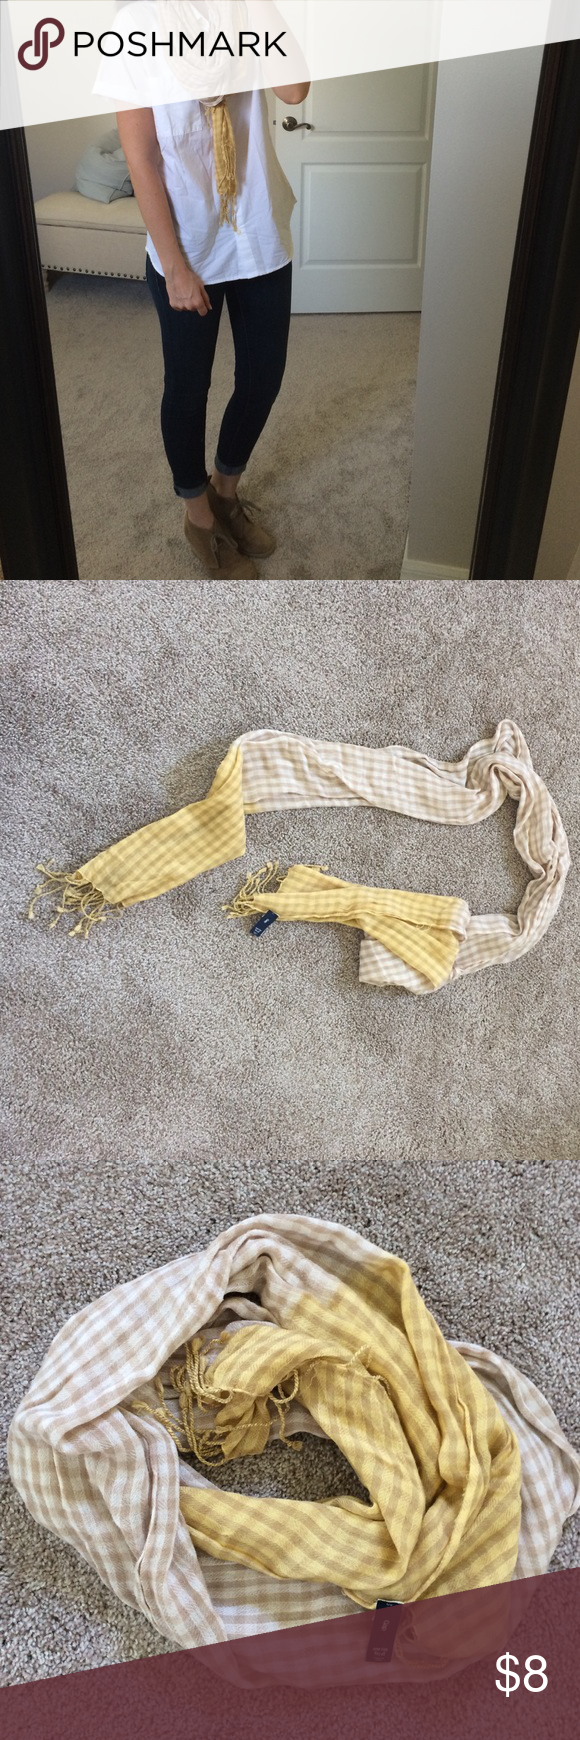 🌴 Gap plaid scarf 🌴 3 items for $9 Gap plaid scarf, maybe worn once - excellent condition GAP Accessories Scarves & Wraps